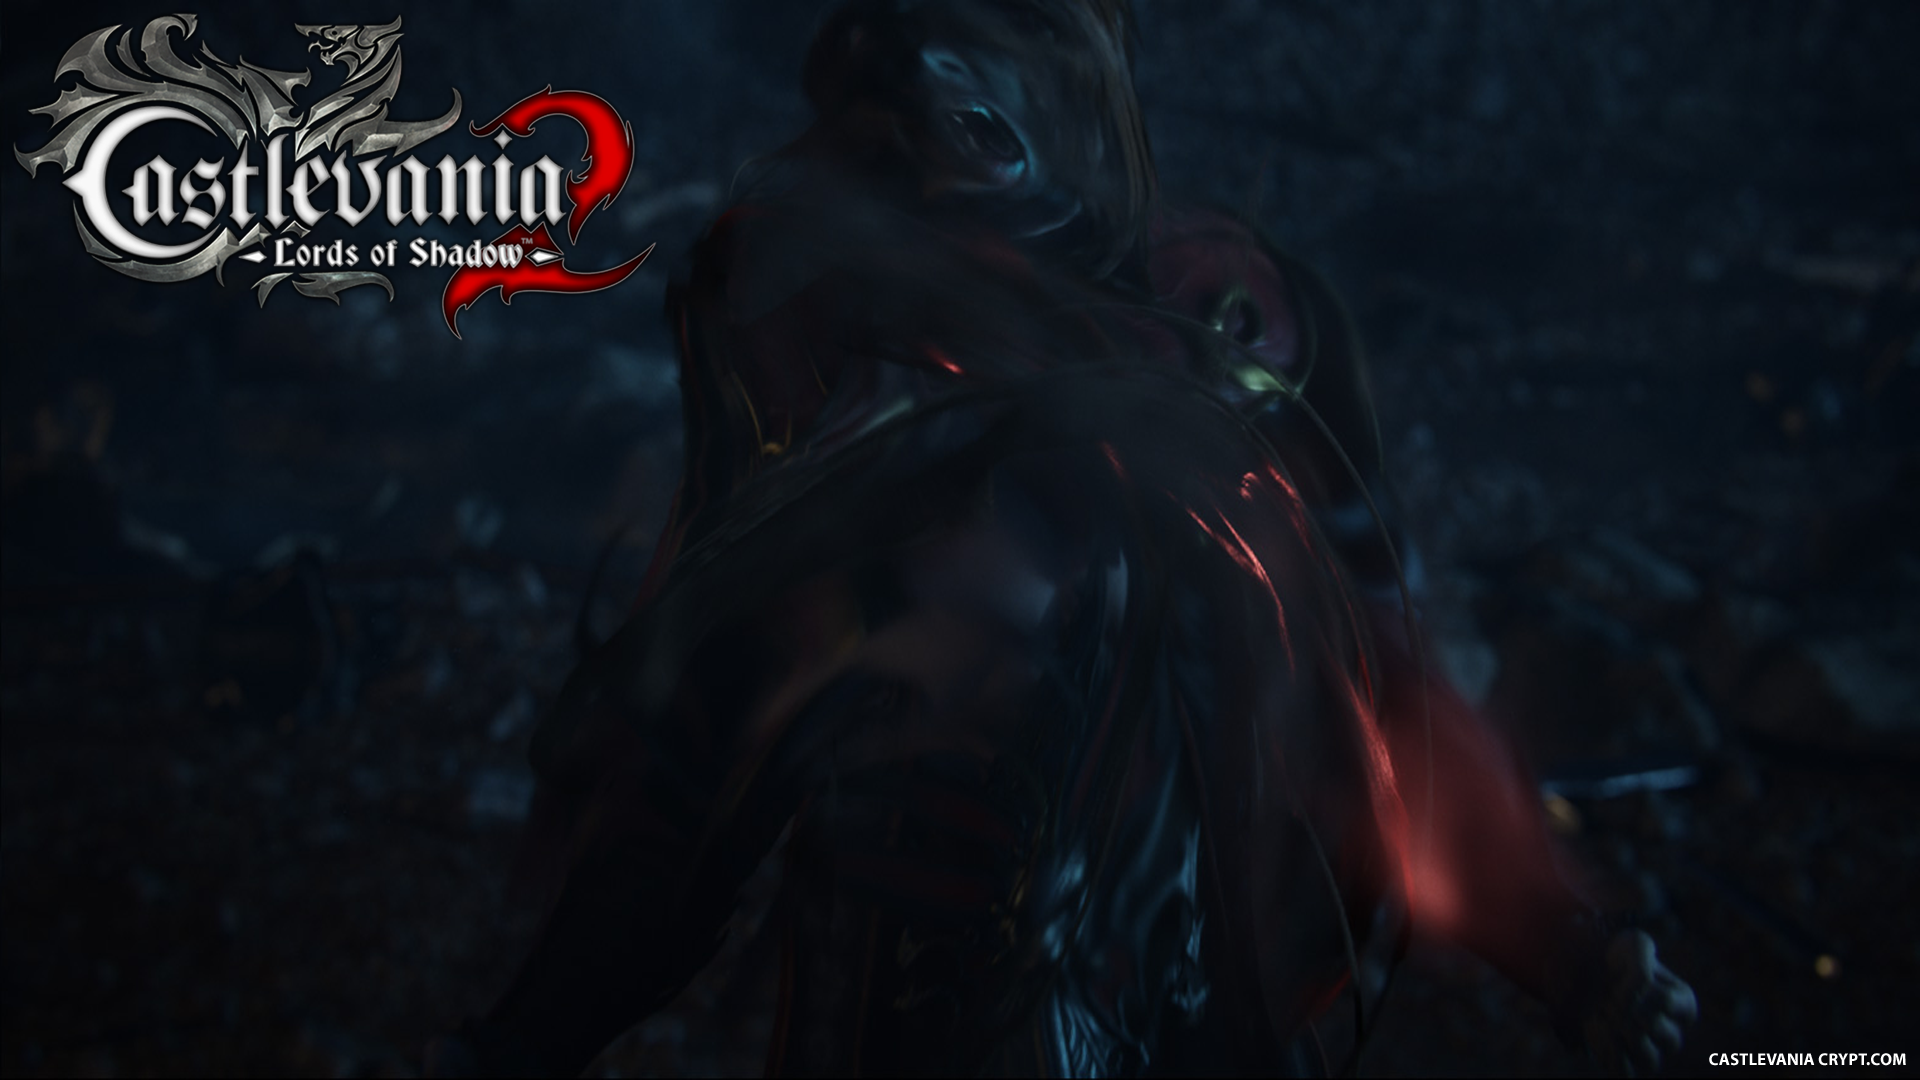 Castlevania: Lords Of Shadow 2 Wallpapers, Pictures, Images